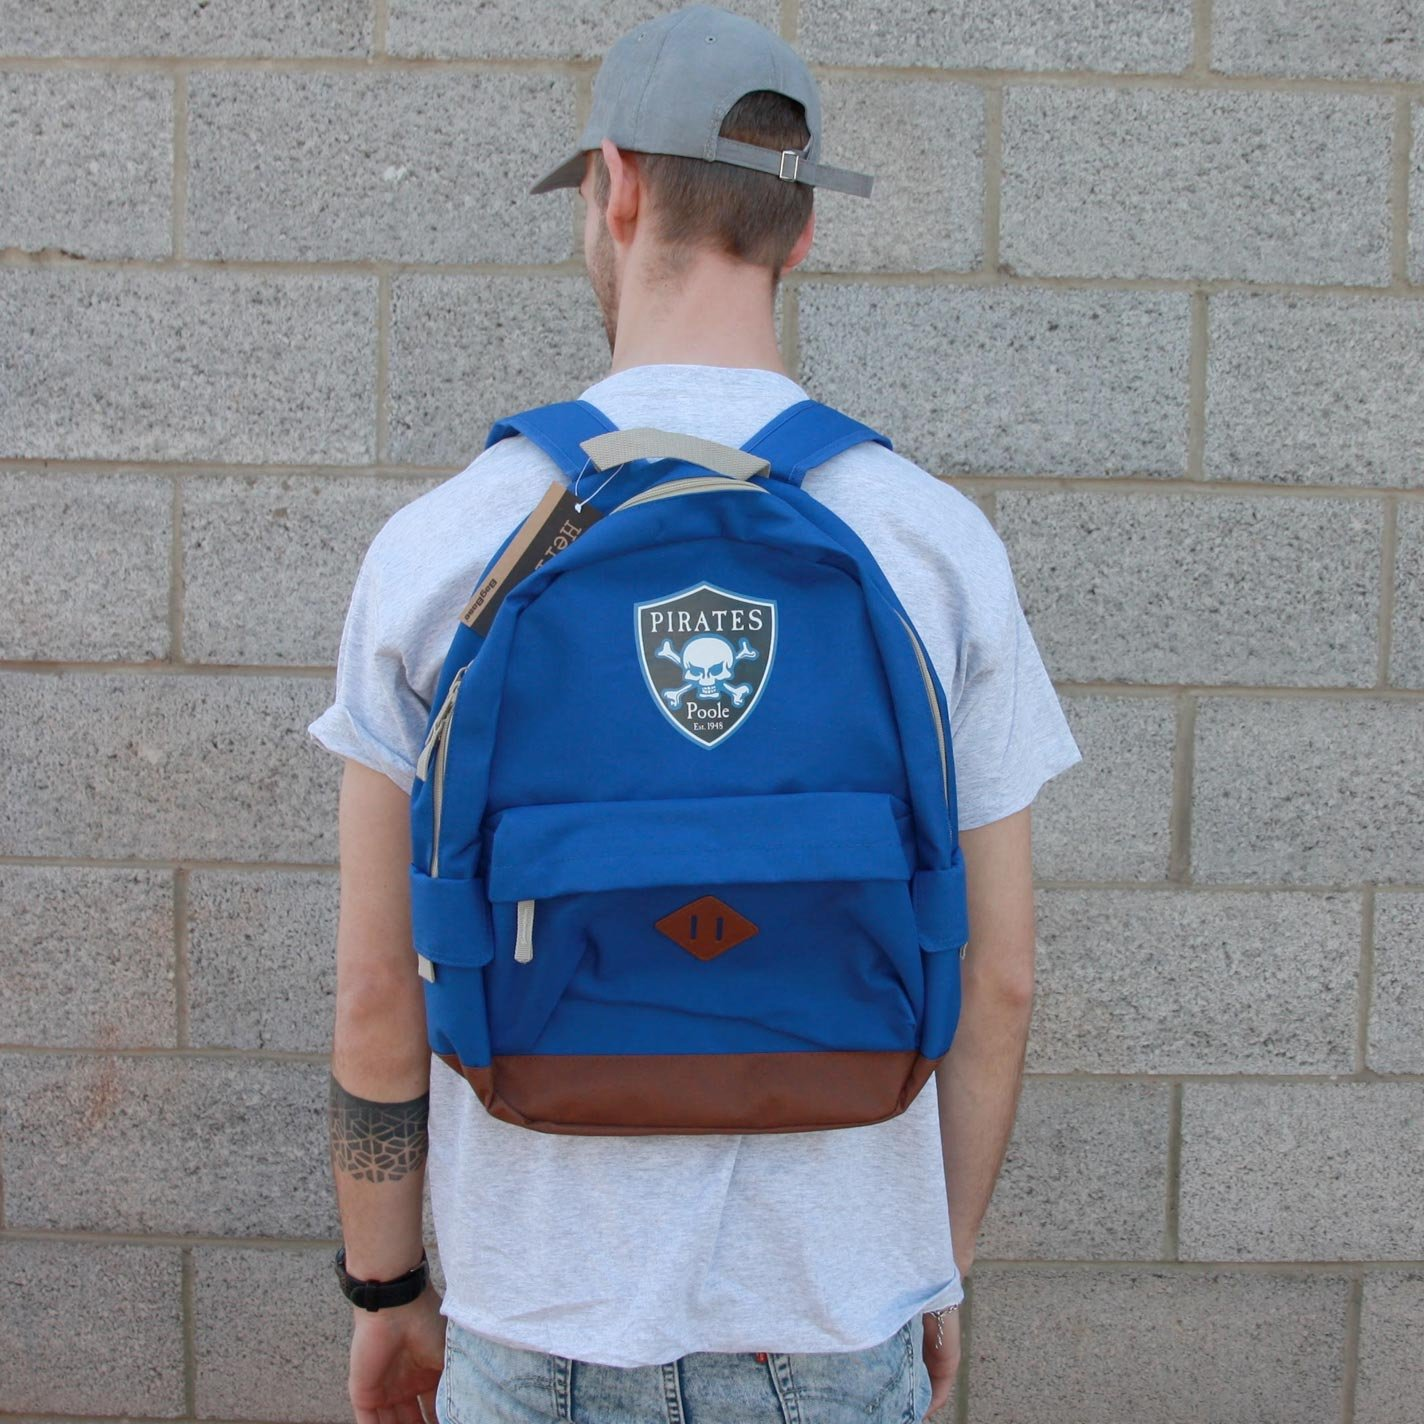 Poole Pirates Backpack